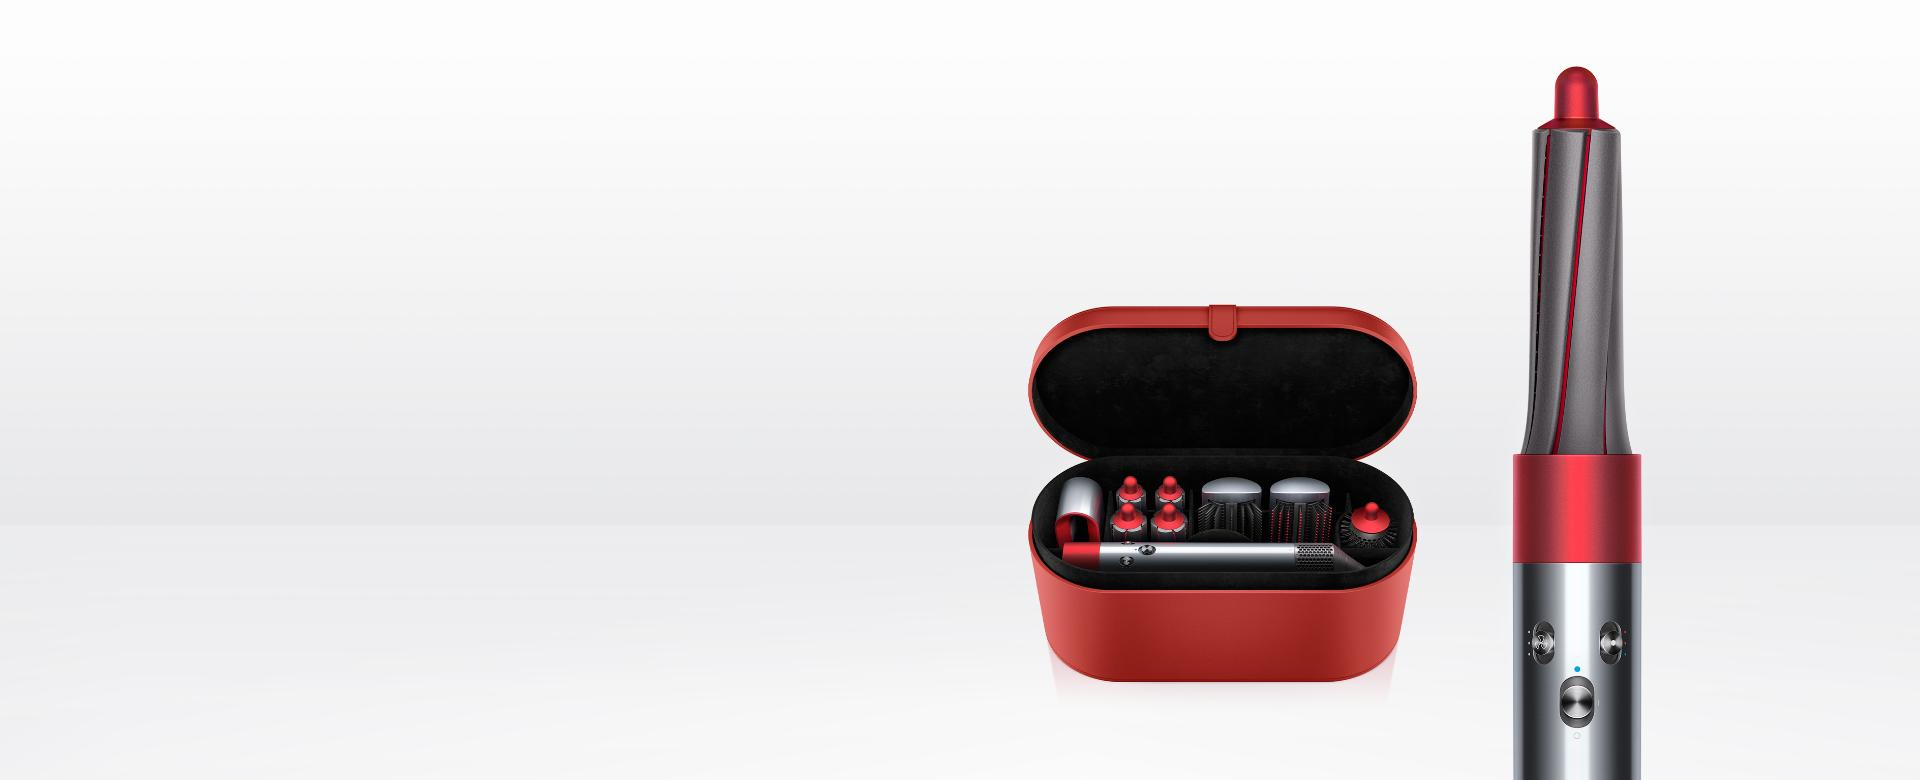 Dyson Airwrap styler iron red with presentation case